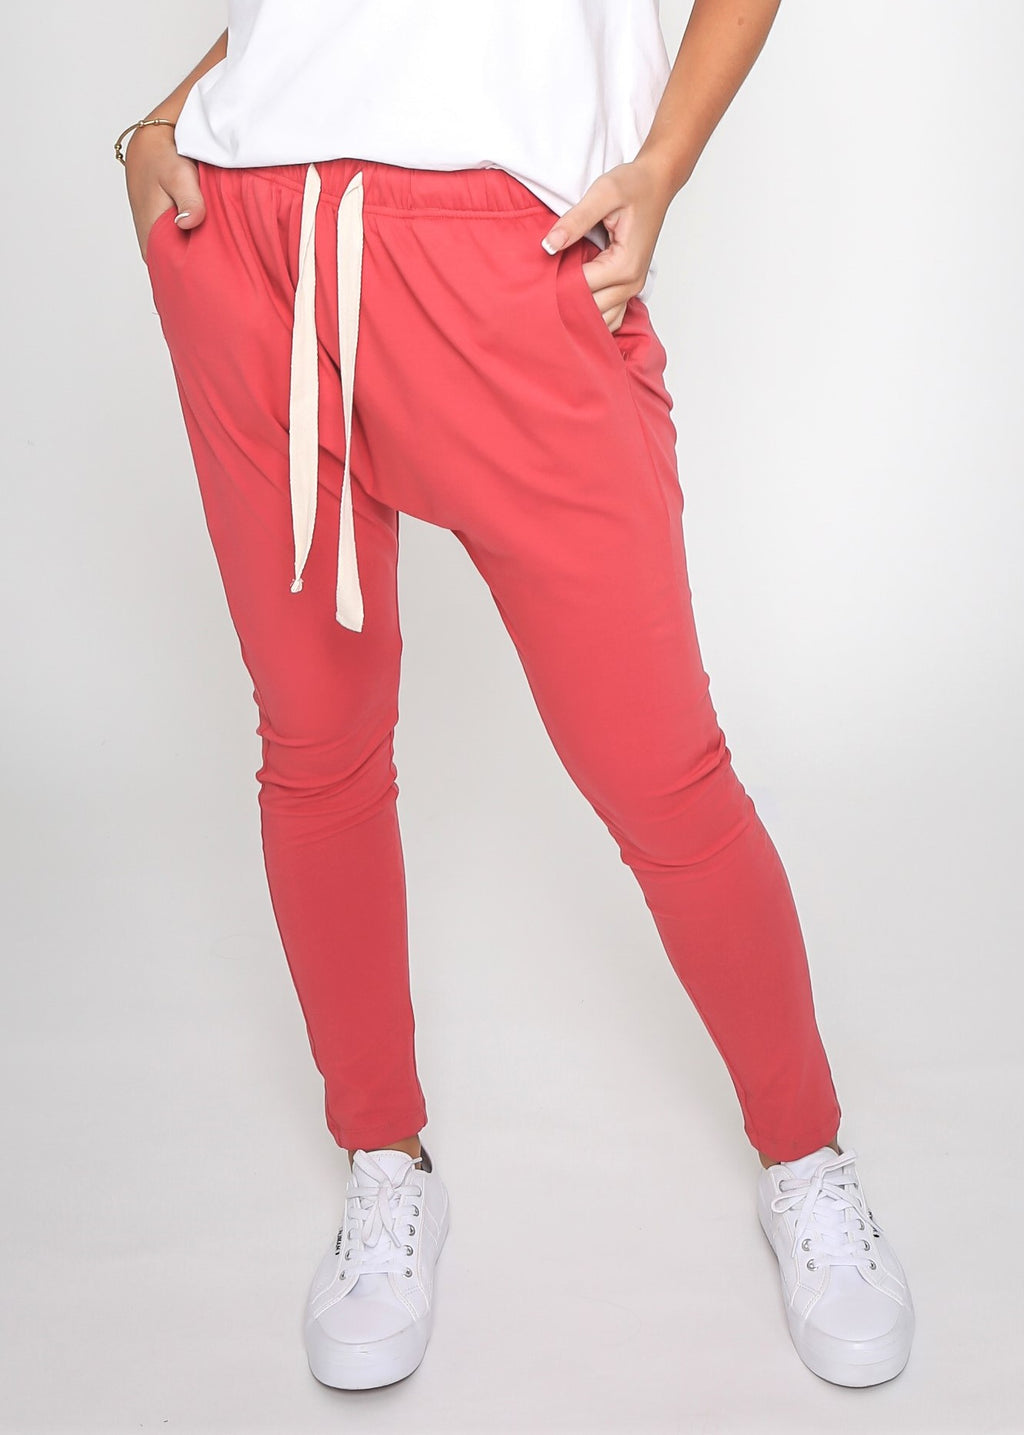 KIERA DROP CROTCH JOGGER - RED